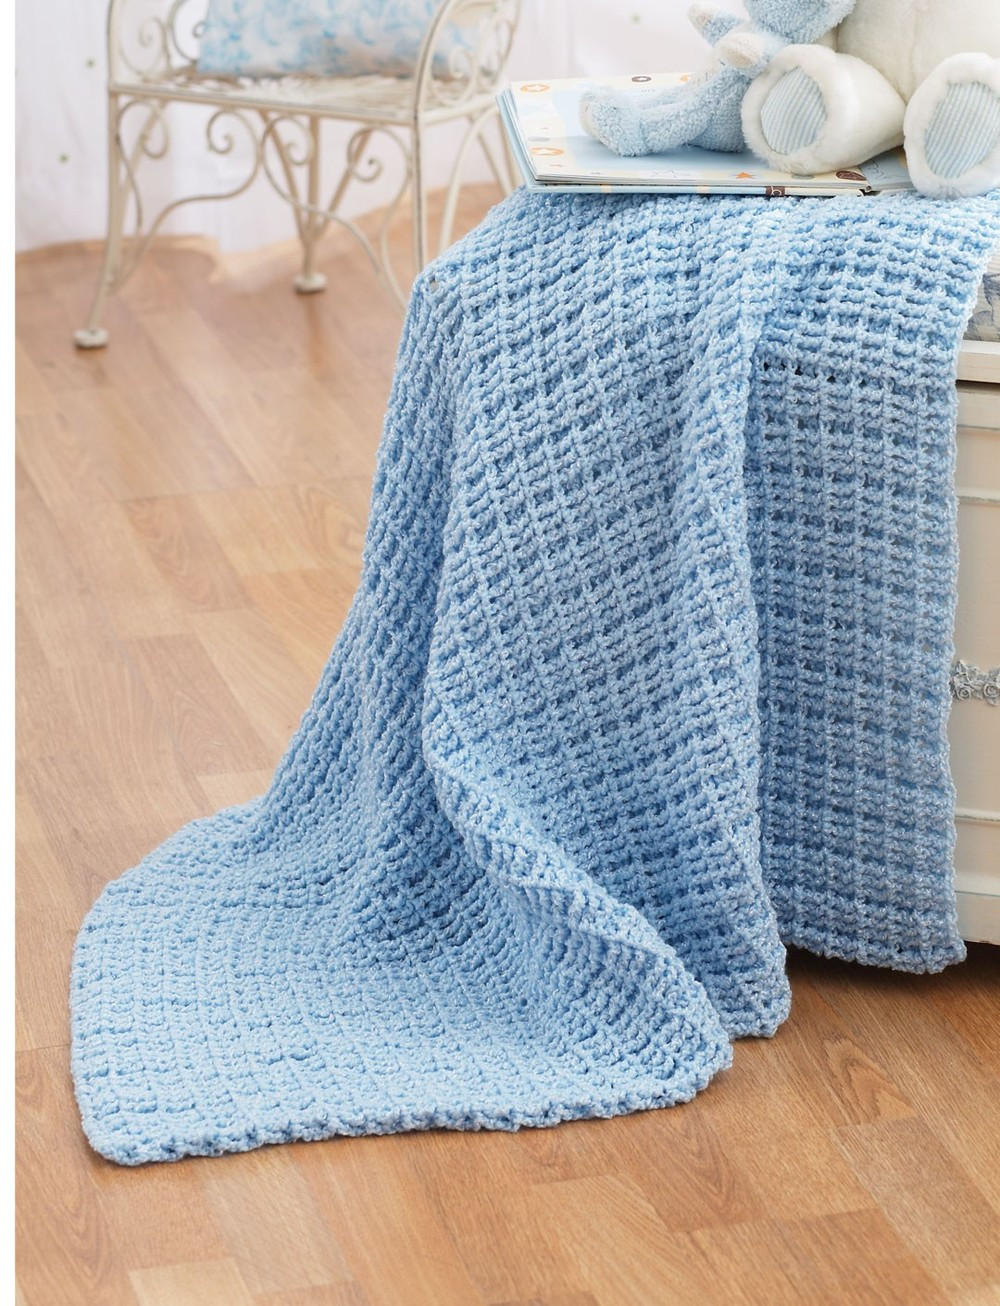 Unique Baby Blue Waffle Ghan Best Yarn for Baby Blanket Of Brilliant 49 Images Best Yarn for Baby Blanket